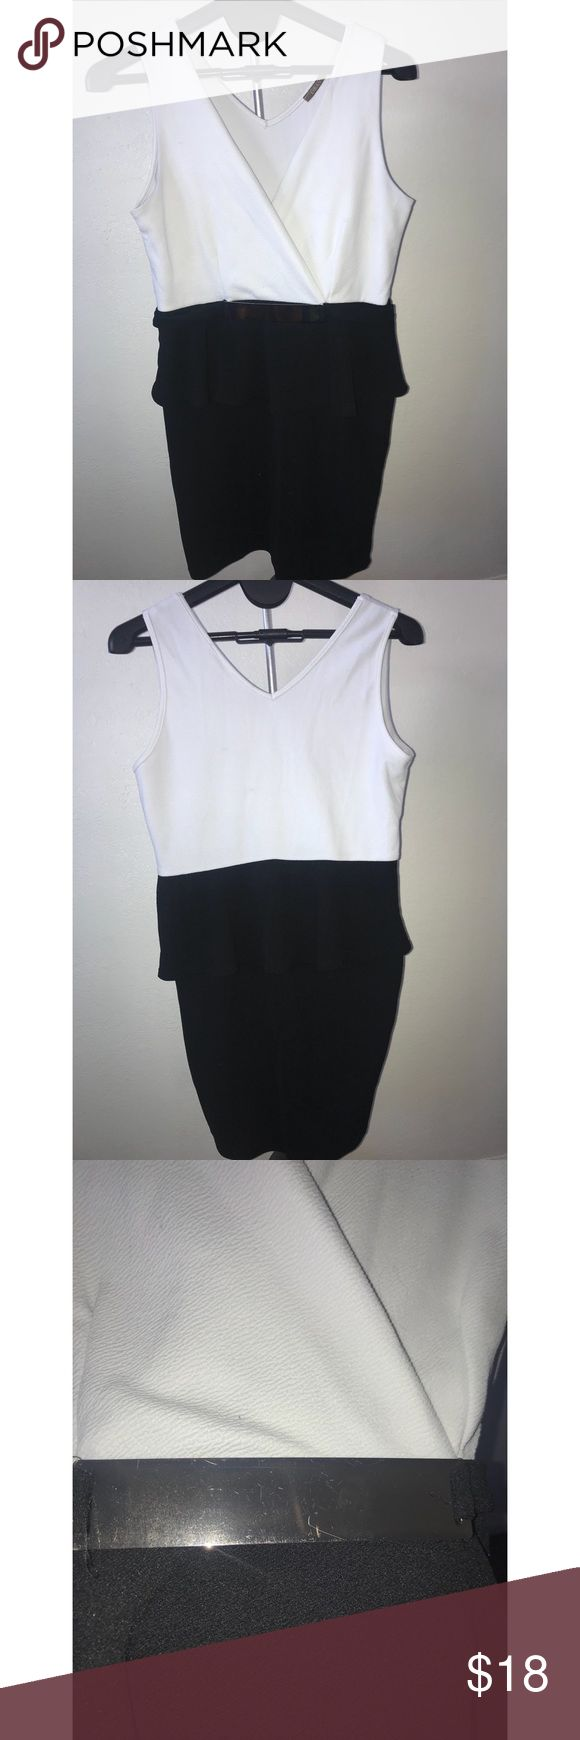 """Black and White Peplum Dress Black and white Libian peplum dress with gold accent belt. Length 36"""" Width 15"""" (stretchy)  Has a small pulled thread shown in photo. Libian Dresses"""